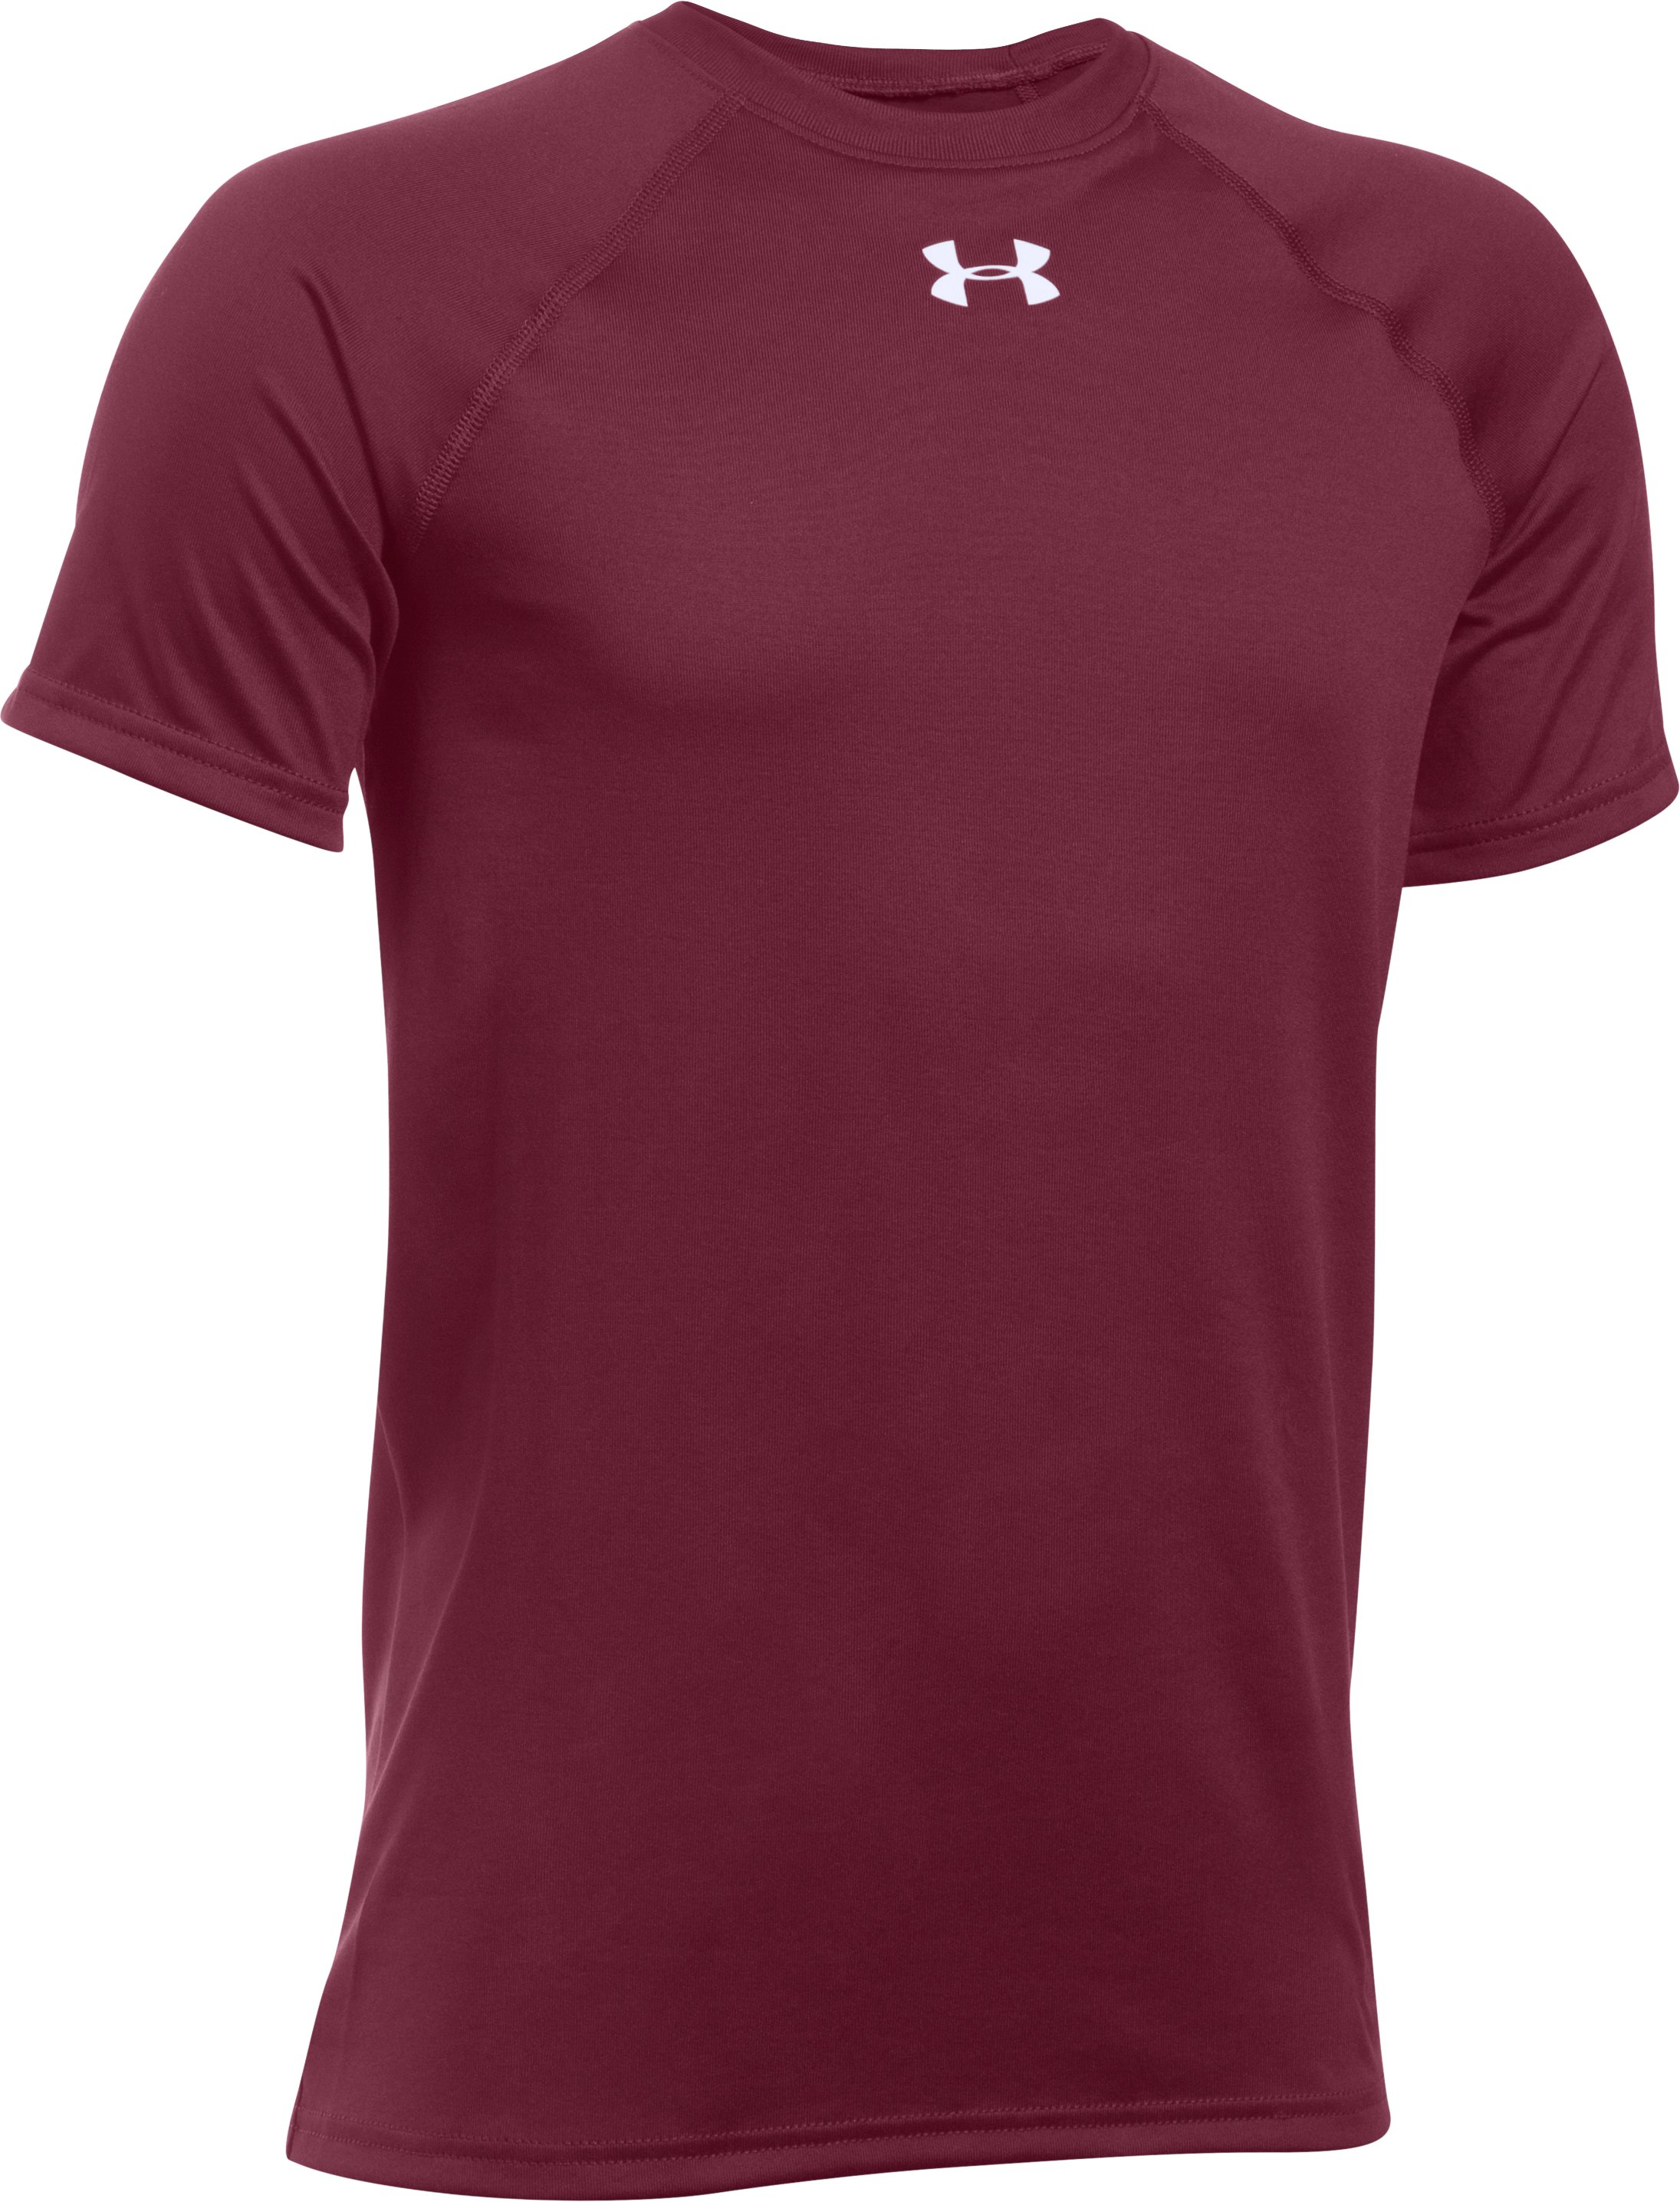 Boys' UA Locker Short Sleeve T-Shirt, Maroon, zoomed image